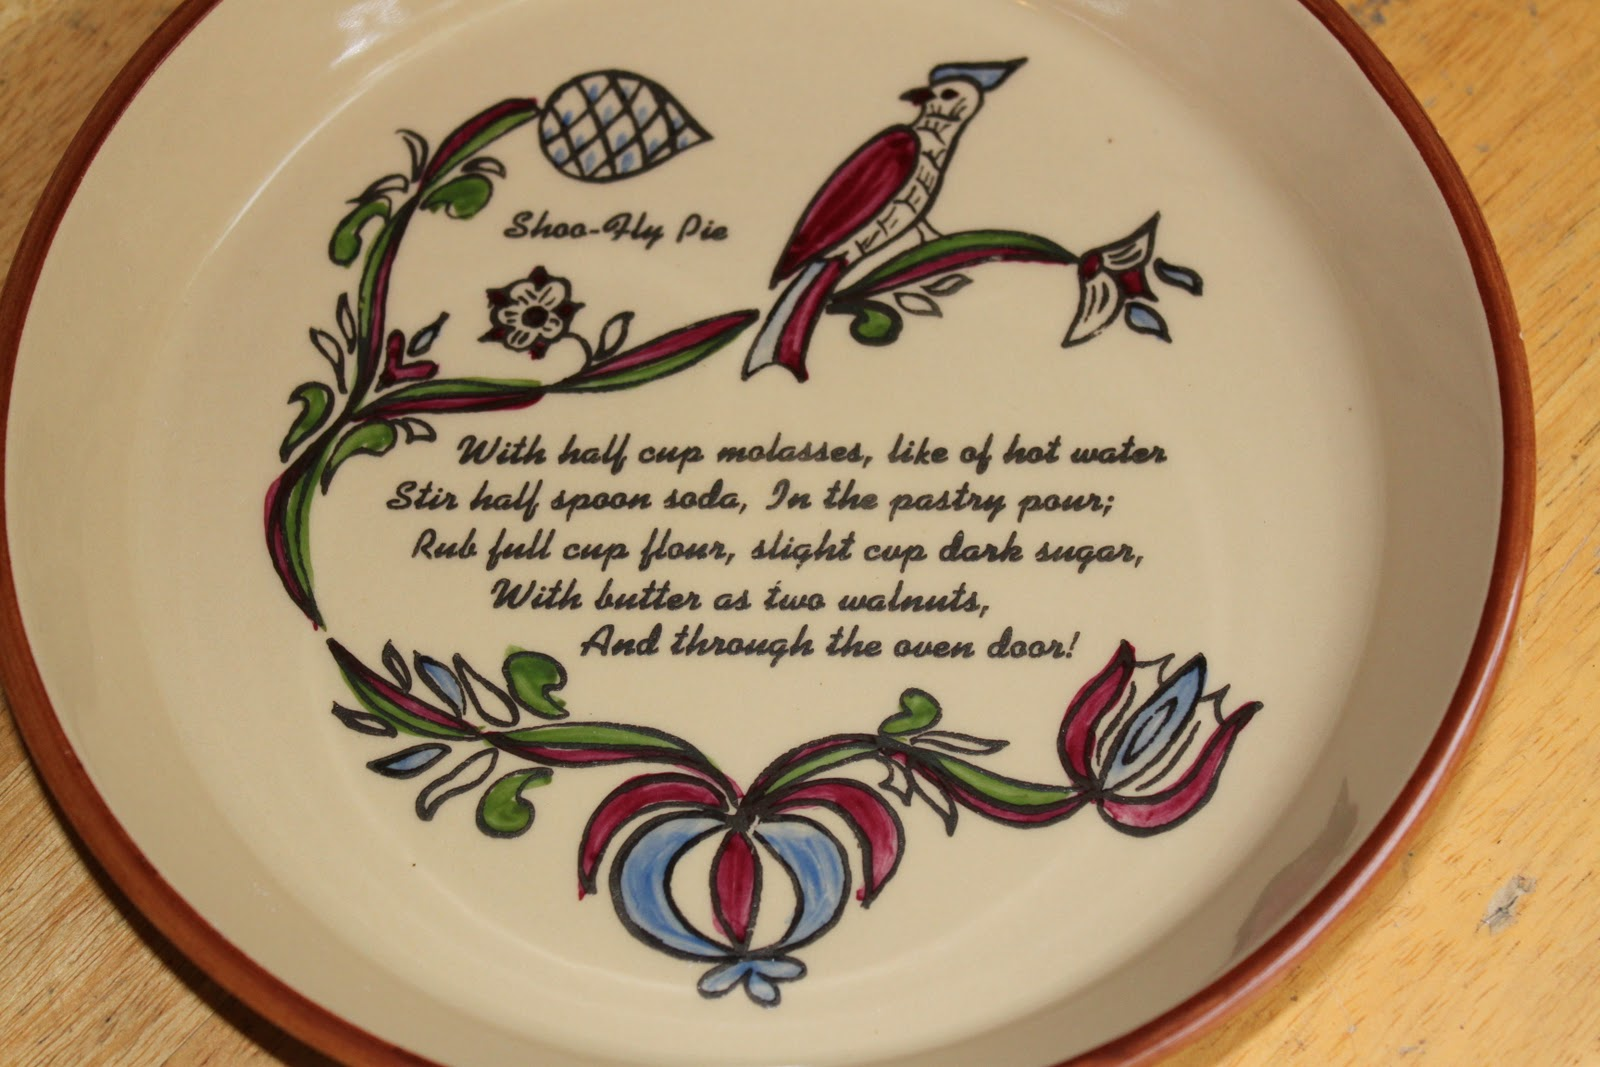 Shoo Fly Pie Plate u2013 total kitch but would be fun to own! & shoo fly pie | chestercountyramblings